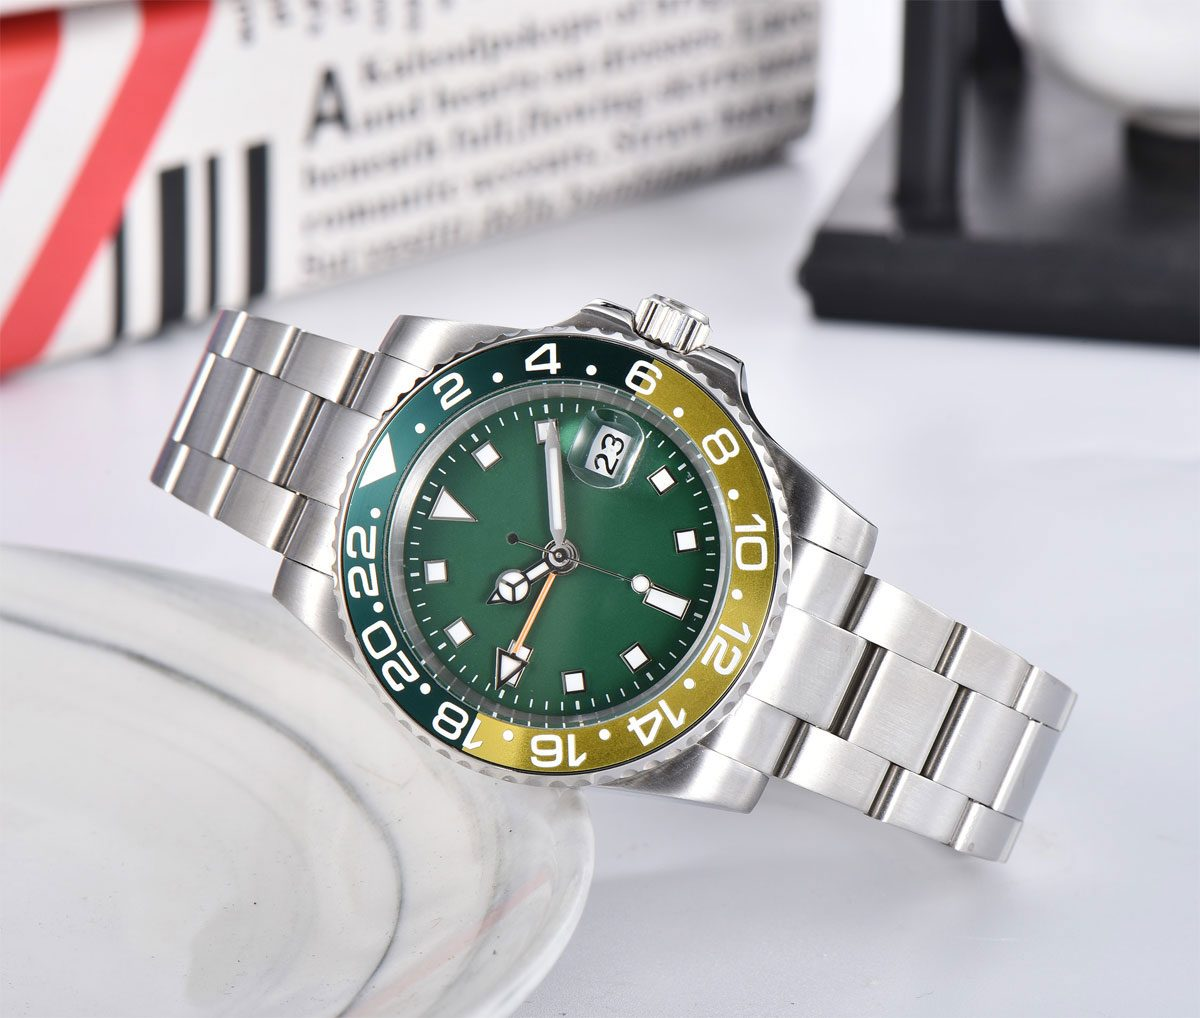 40mm Black Aseptic Dial Luminous Sapphire Glass GMT Automatic Men's Watch Luxury Brand Top Mechanical Watch Relogio Masculino